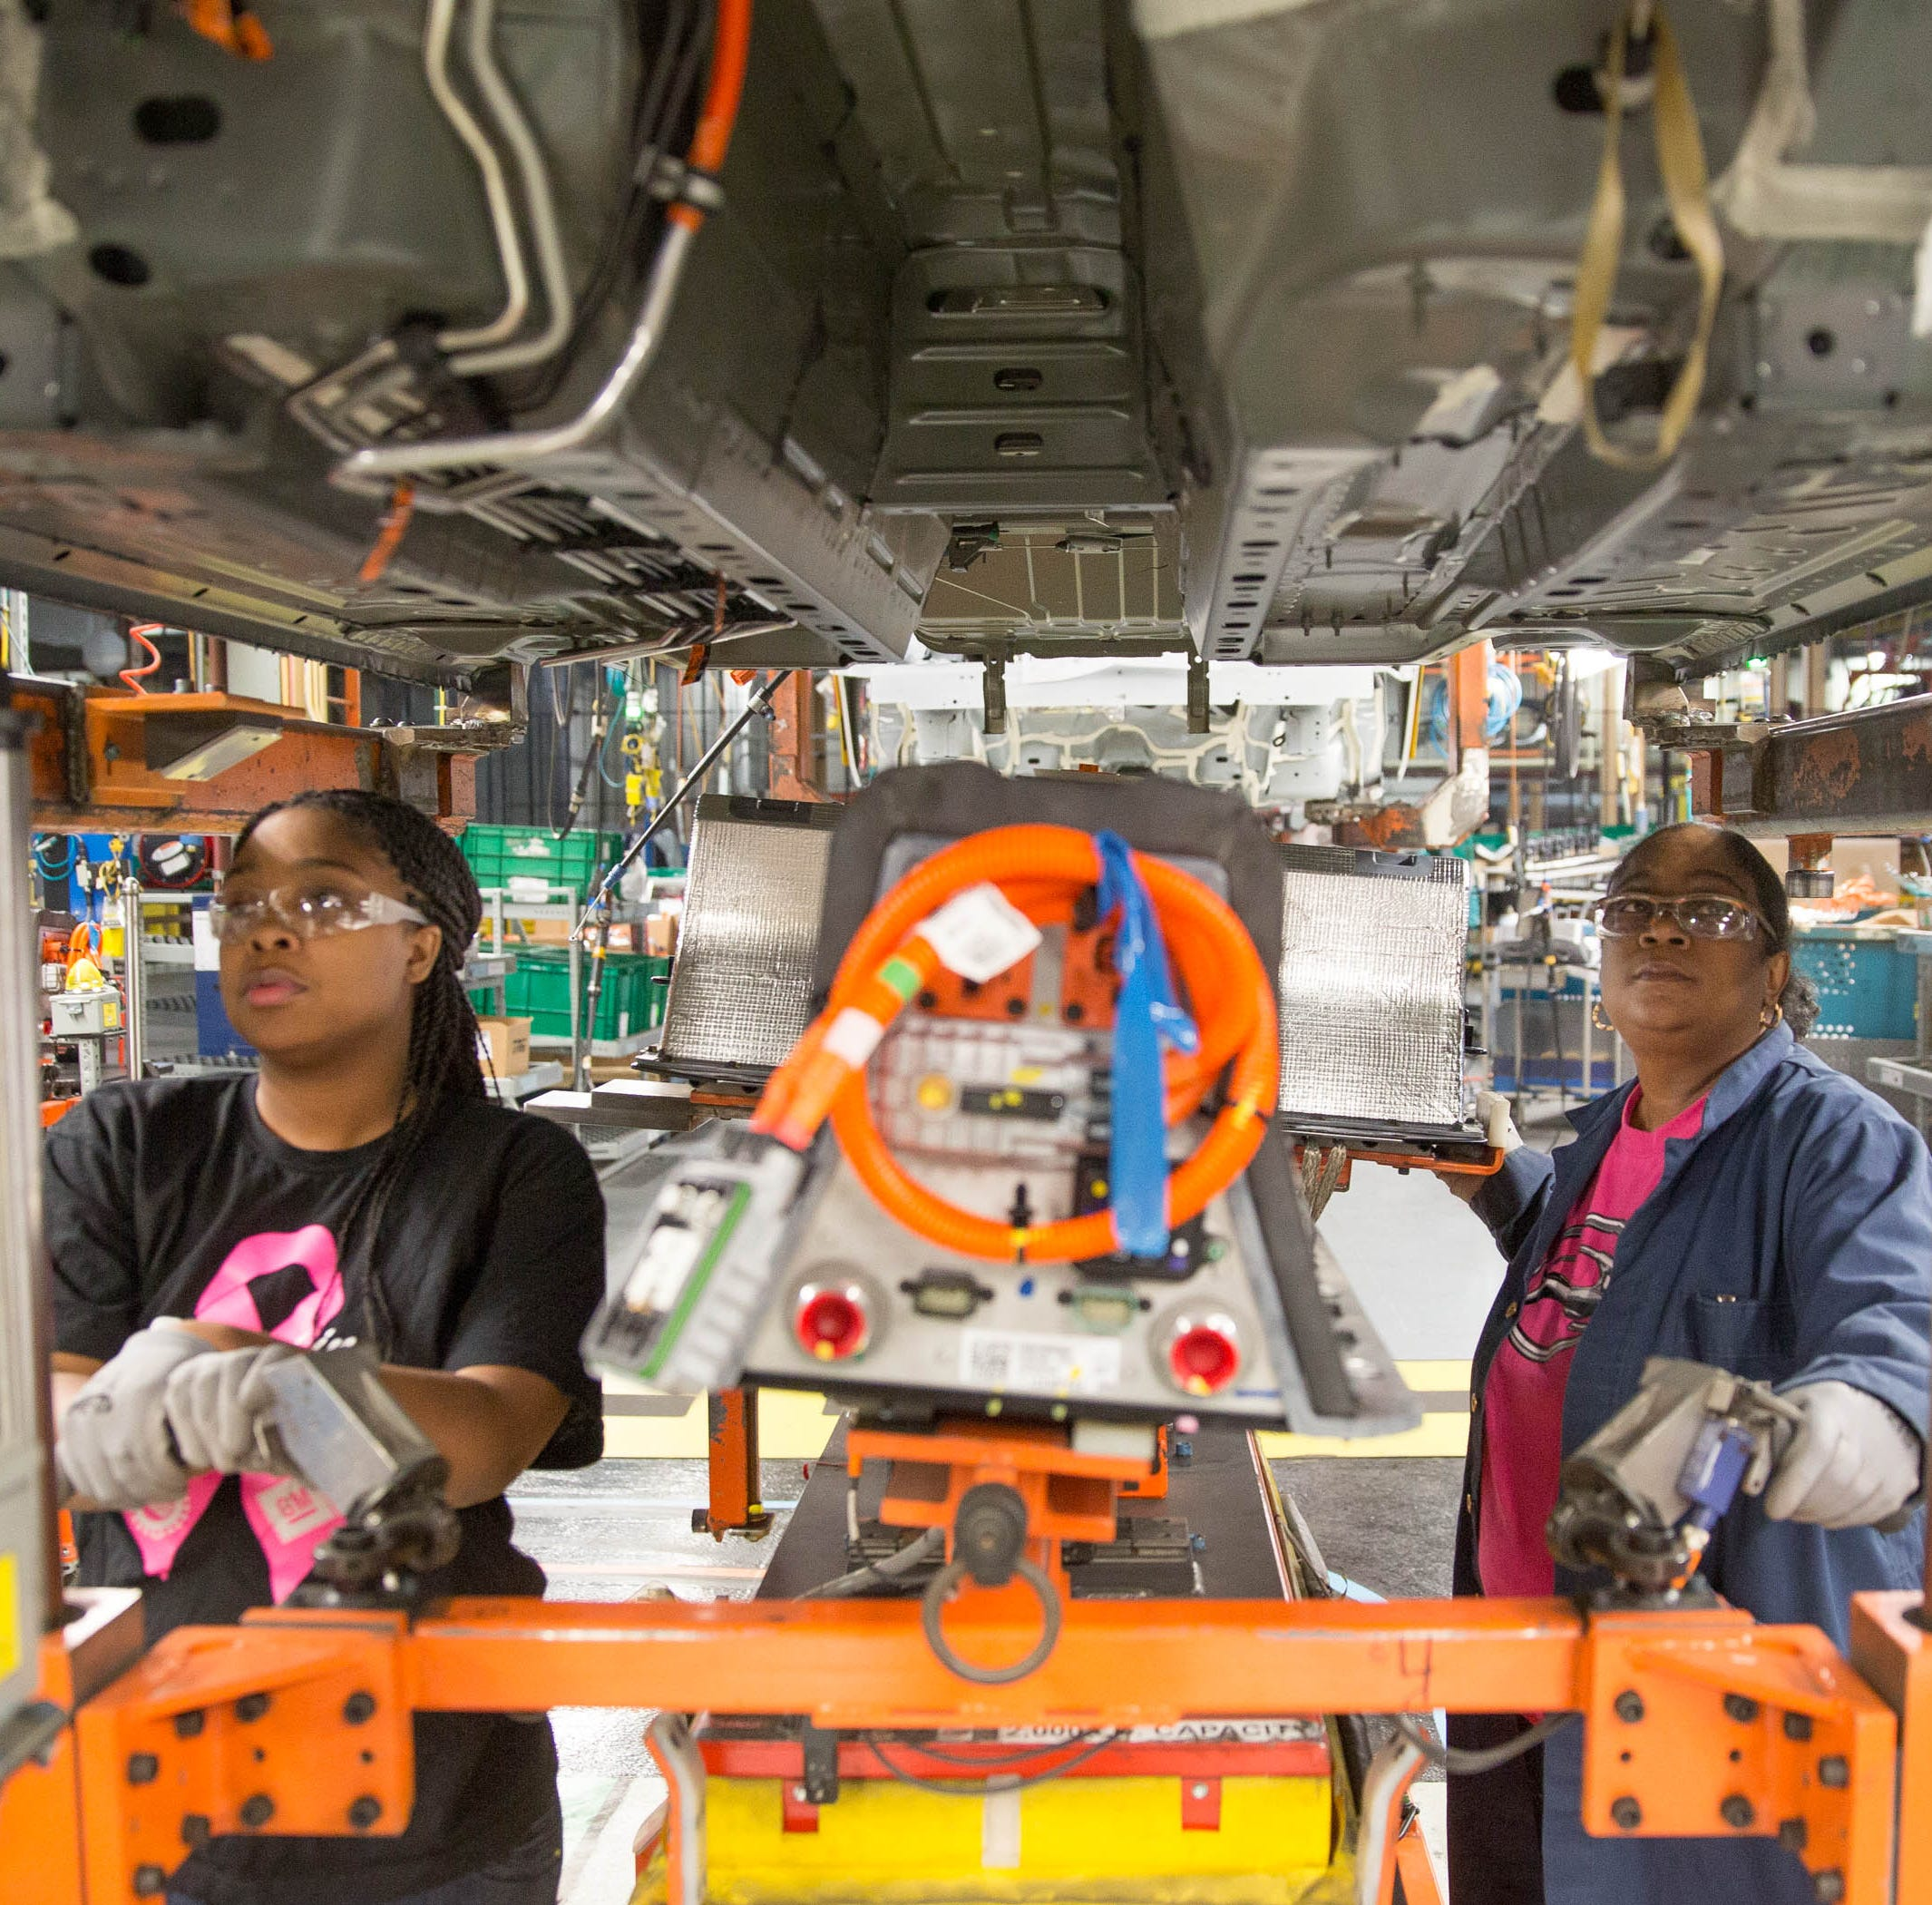 GM decision to close Detroit-Hamtramck met with shock, anger